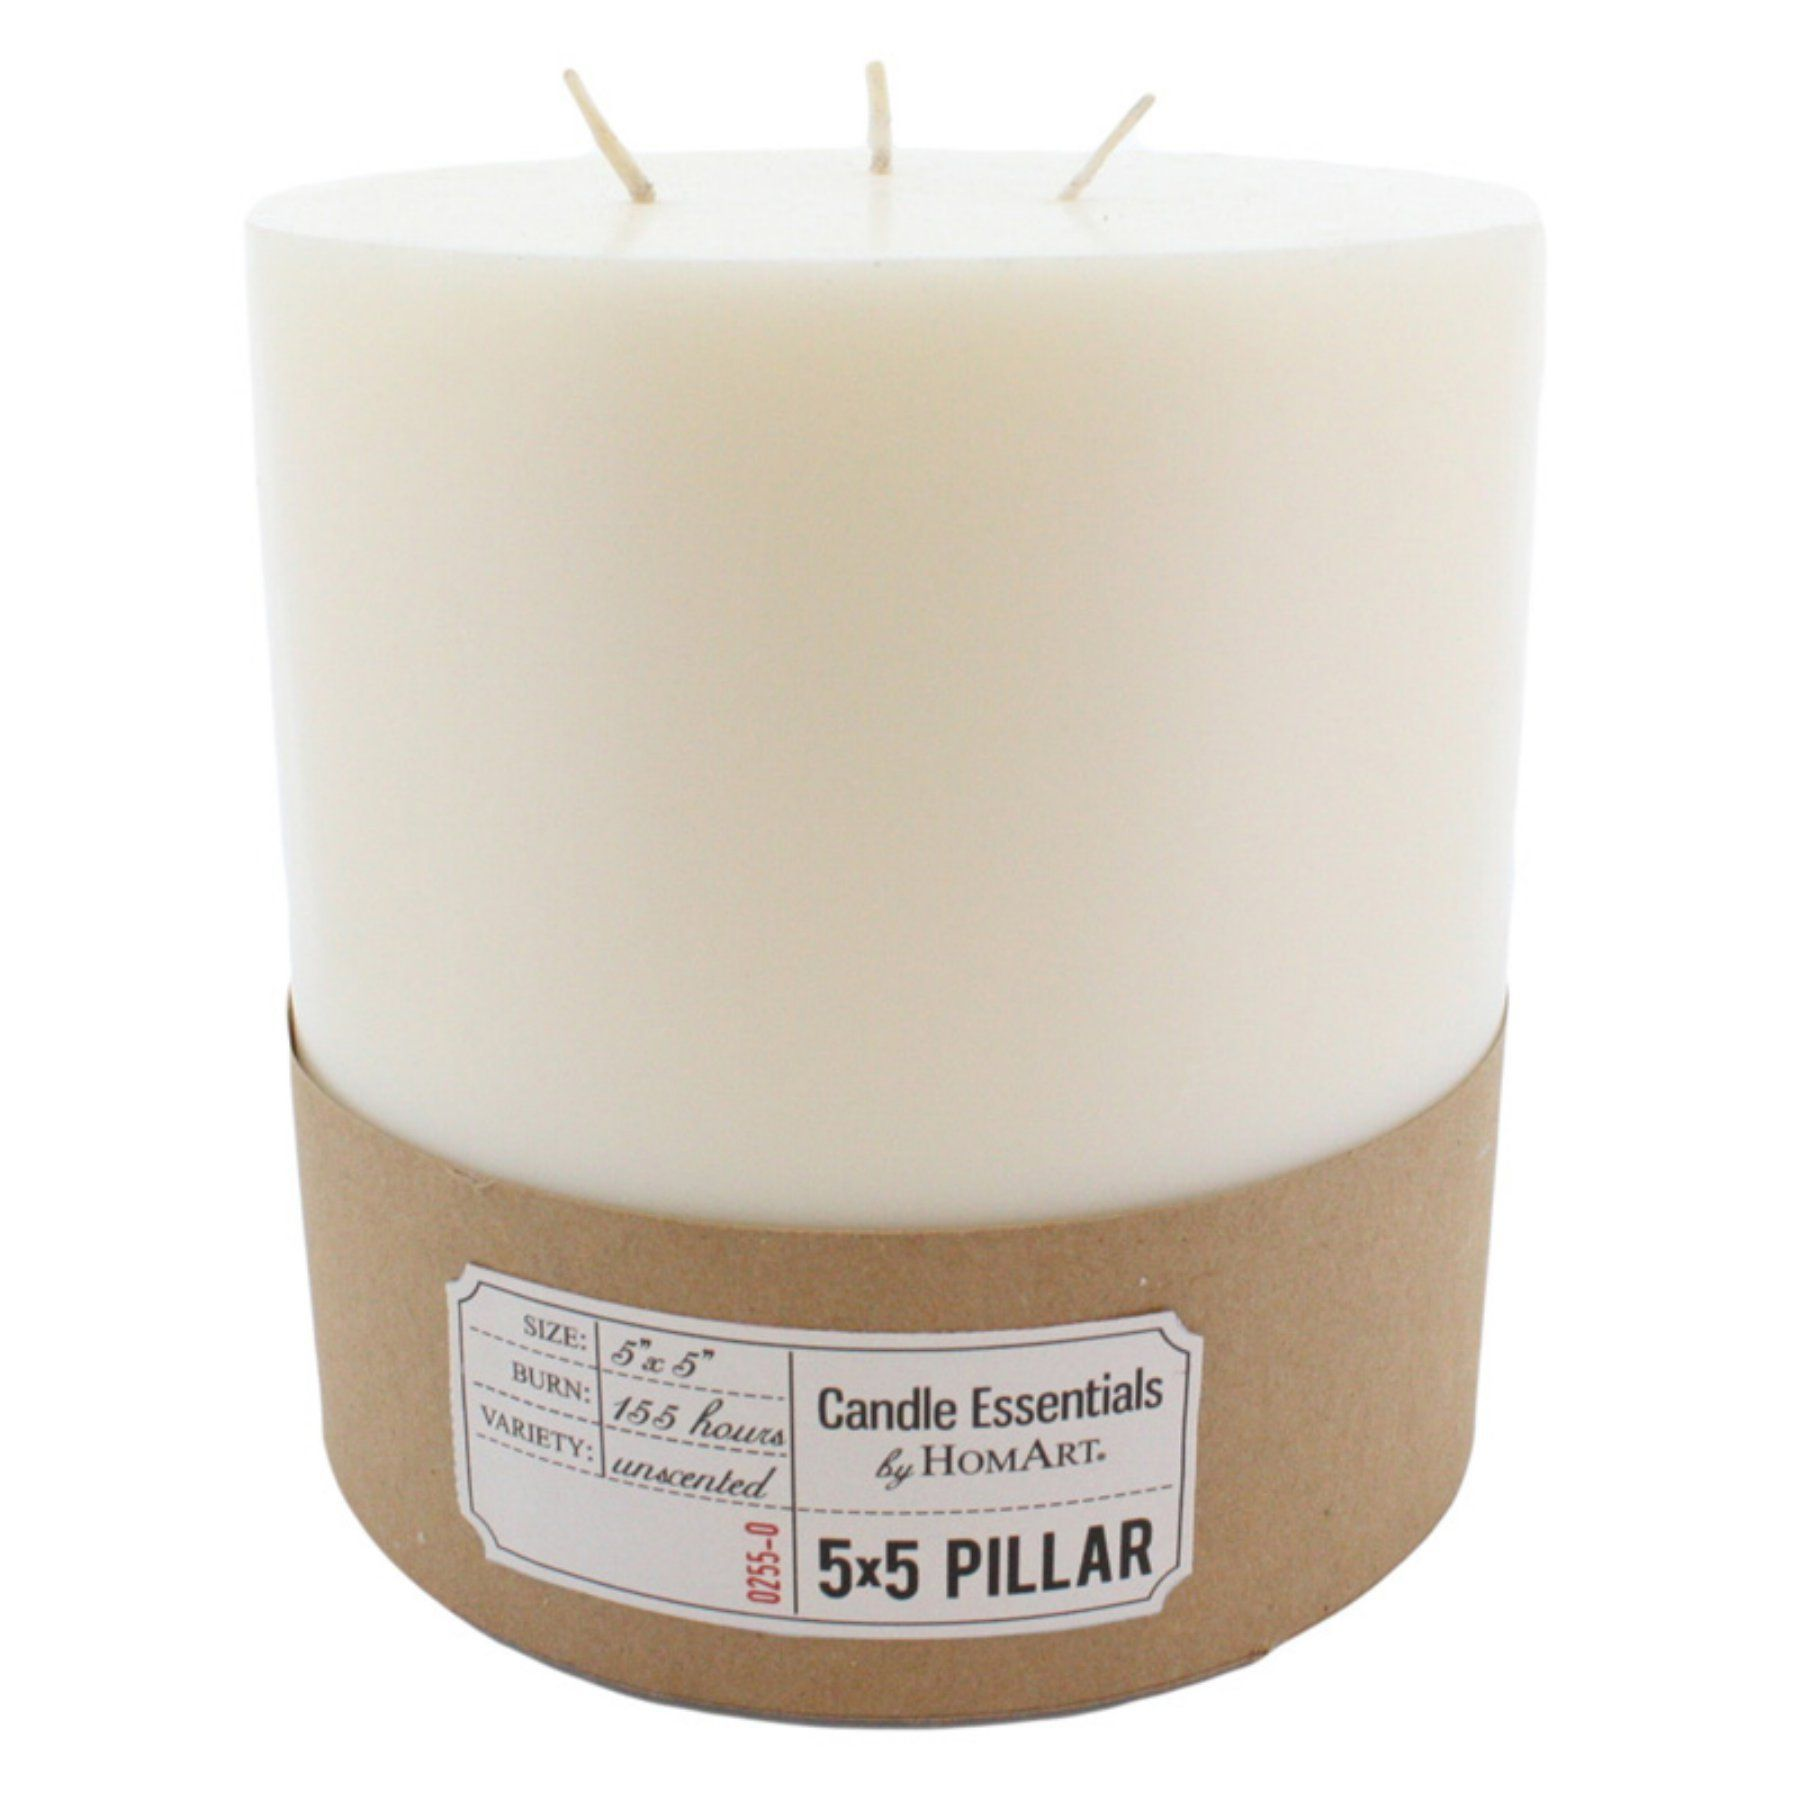 Pillar candle diam x h in products